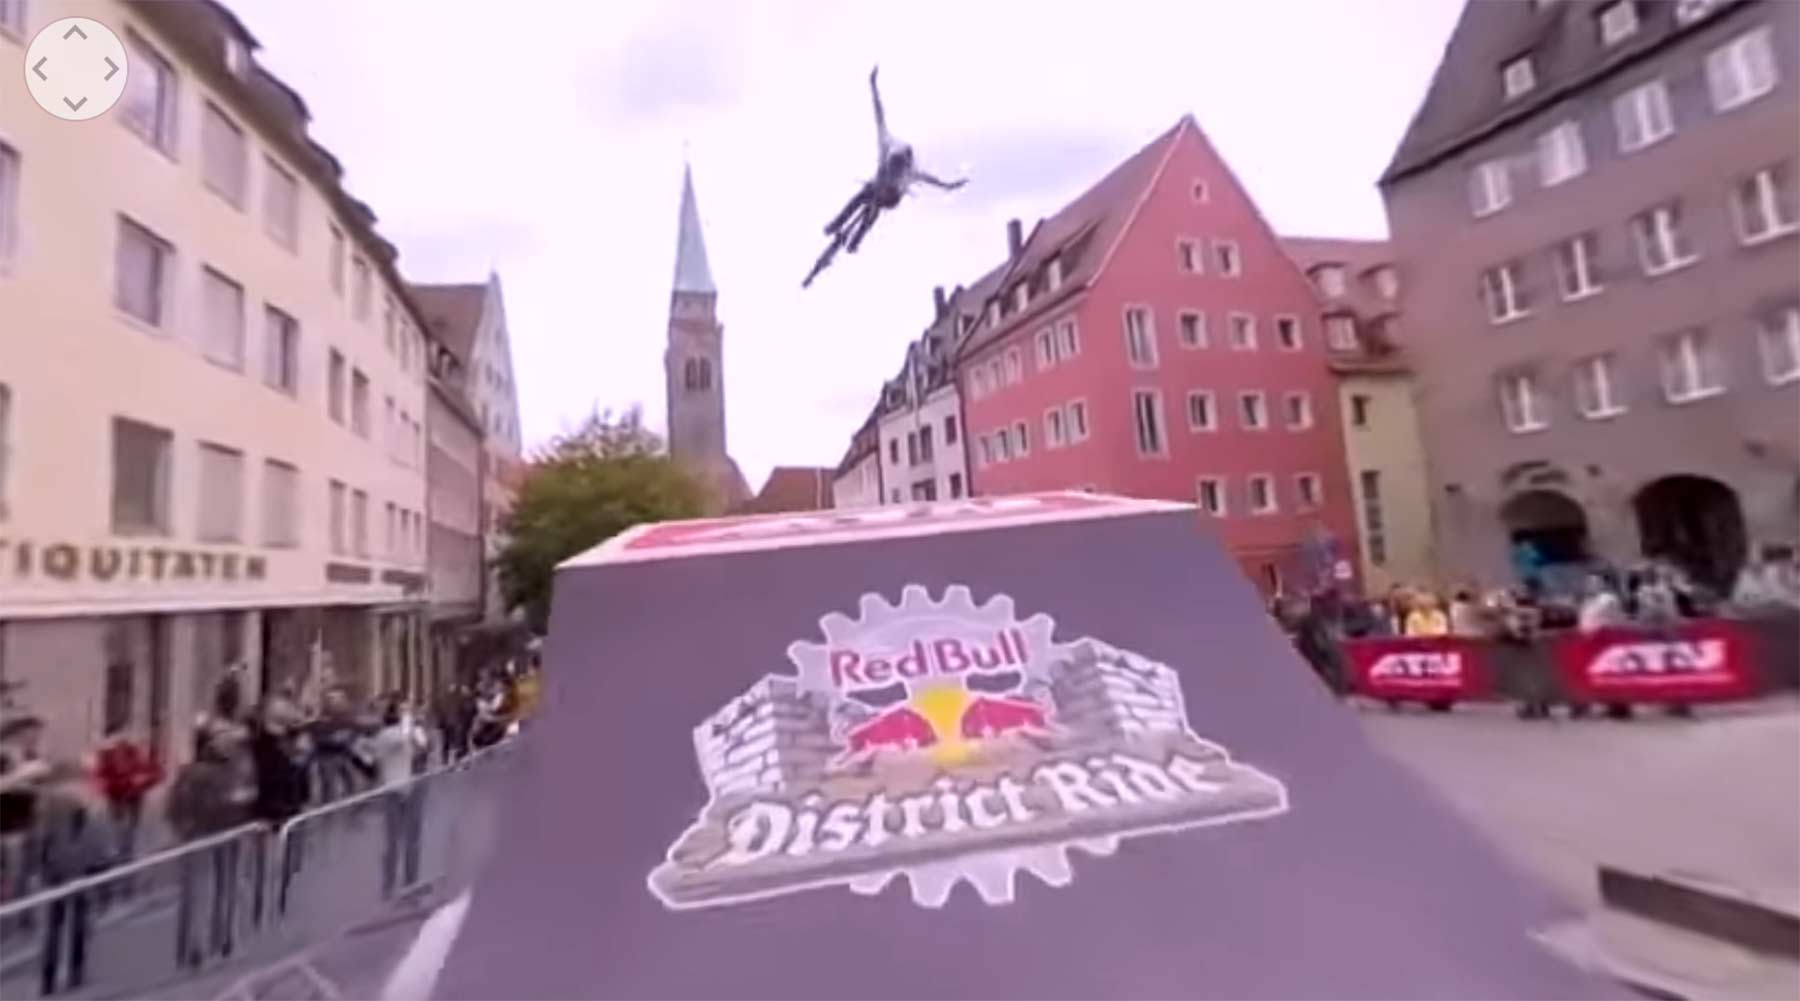 Rasante Mountainbike-Tricktour mit 360°-Kamera red-bull-district-ride-360